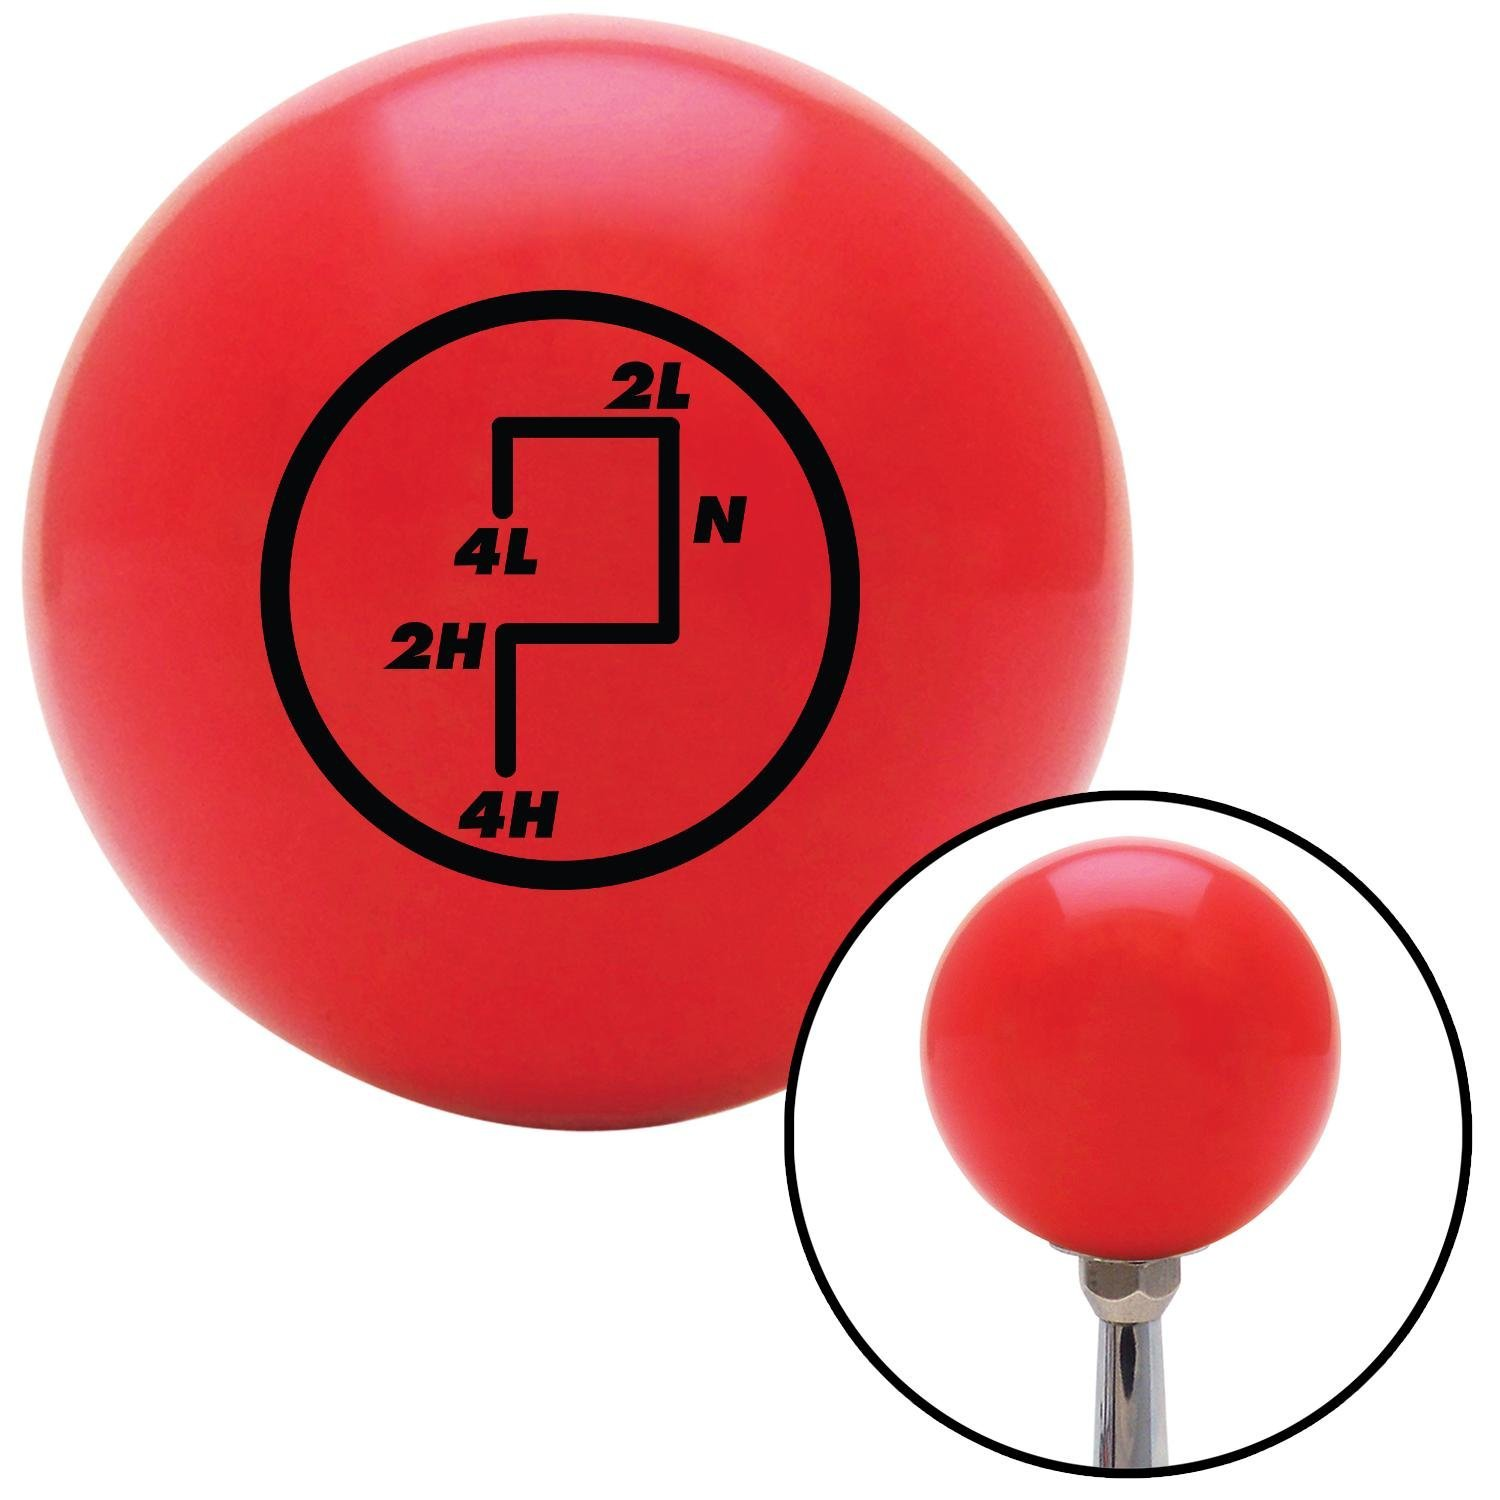 American Shifter 100715 Red Shift Knob with M16 x 1.5 Insert Black Transfer Case #6